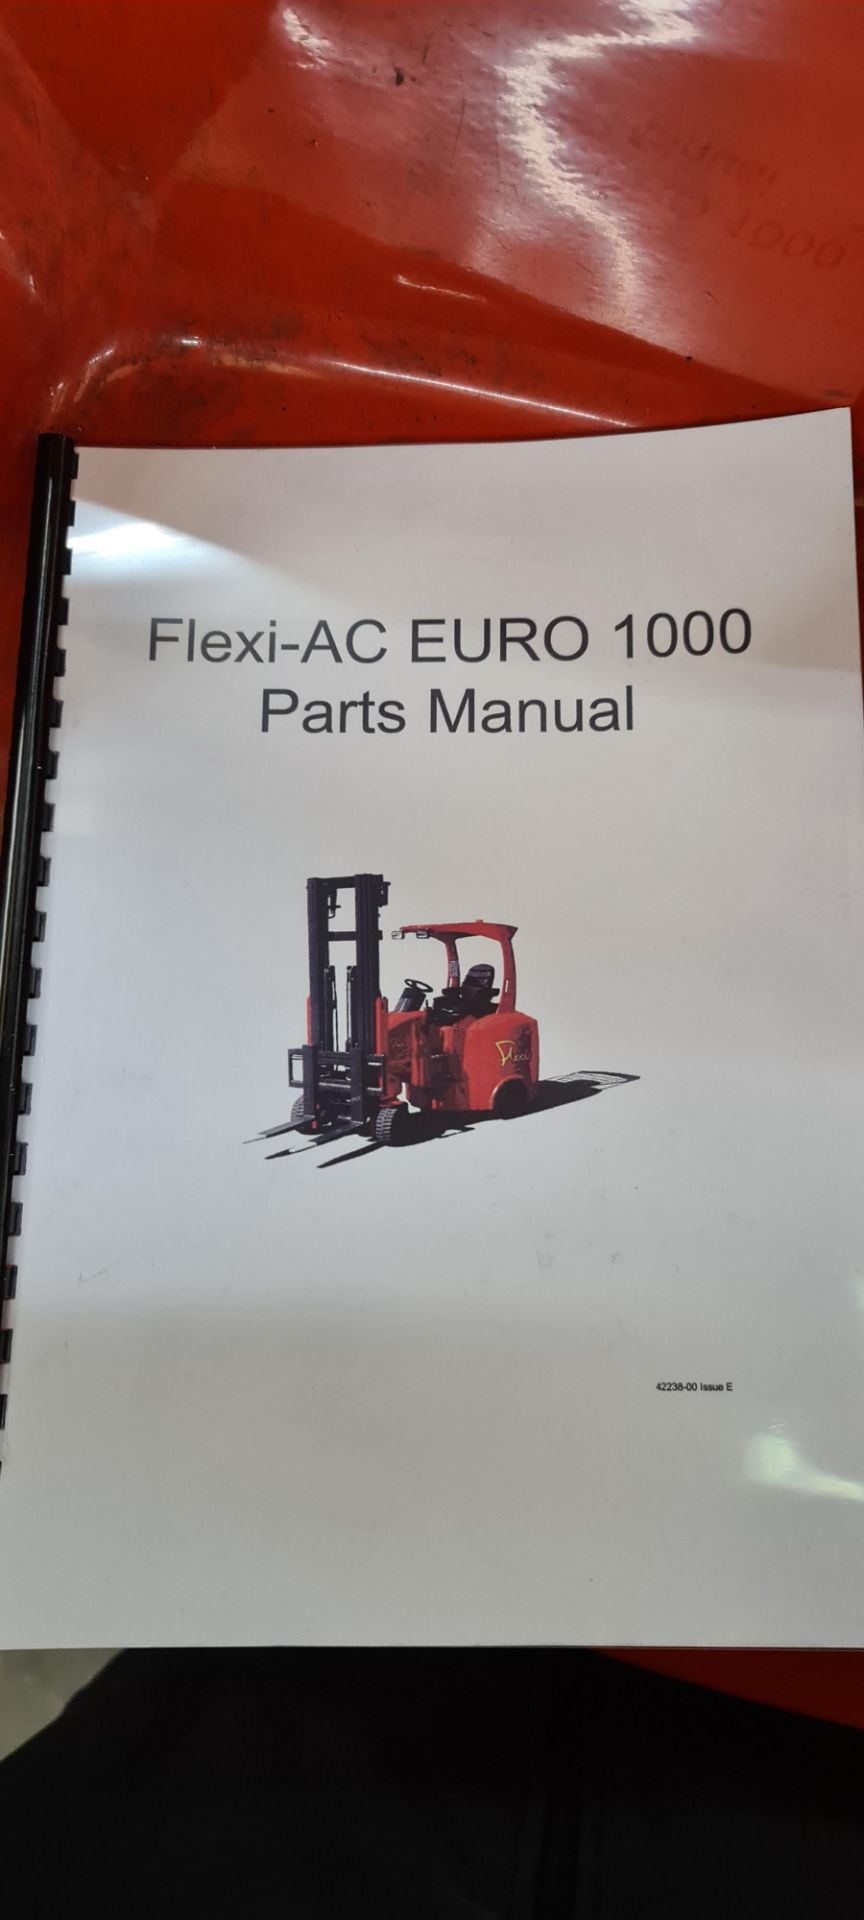 2014 Flexi Euro AC 'bendy' electric Fork Lift Truck - Image 28 of 29